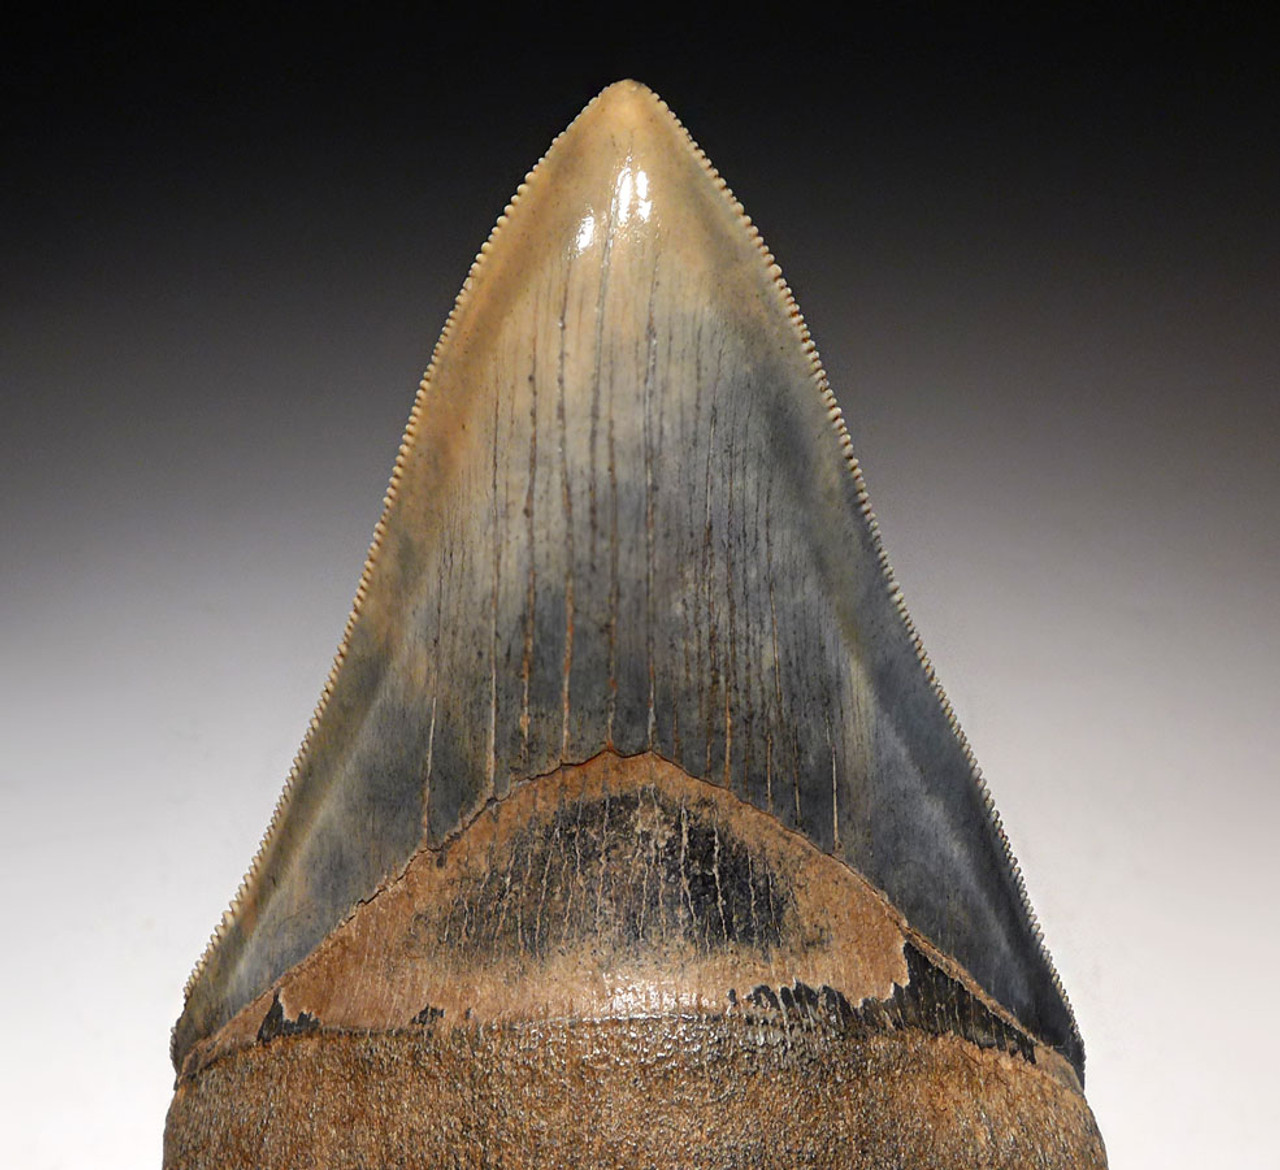 SH6-369 - INVESTMENT GRADE 4.2 INCH MEGALODON SHARK TOOTH WITH BABY BLUE AND GOLD MOTTLED ENAMEL